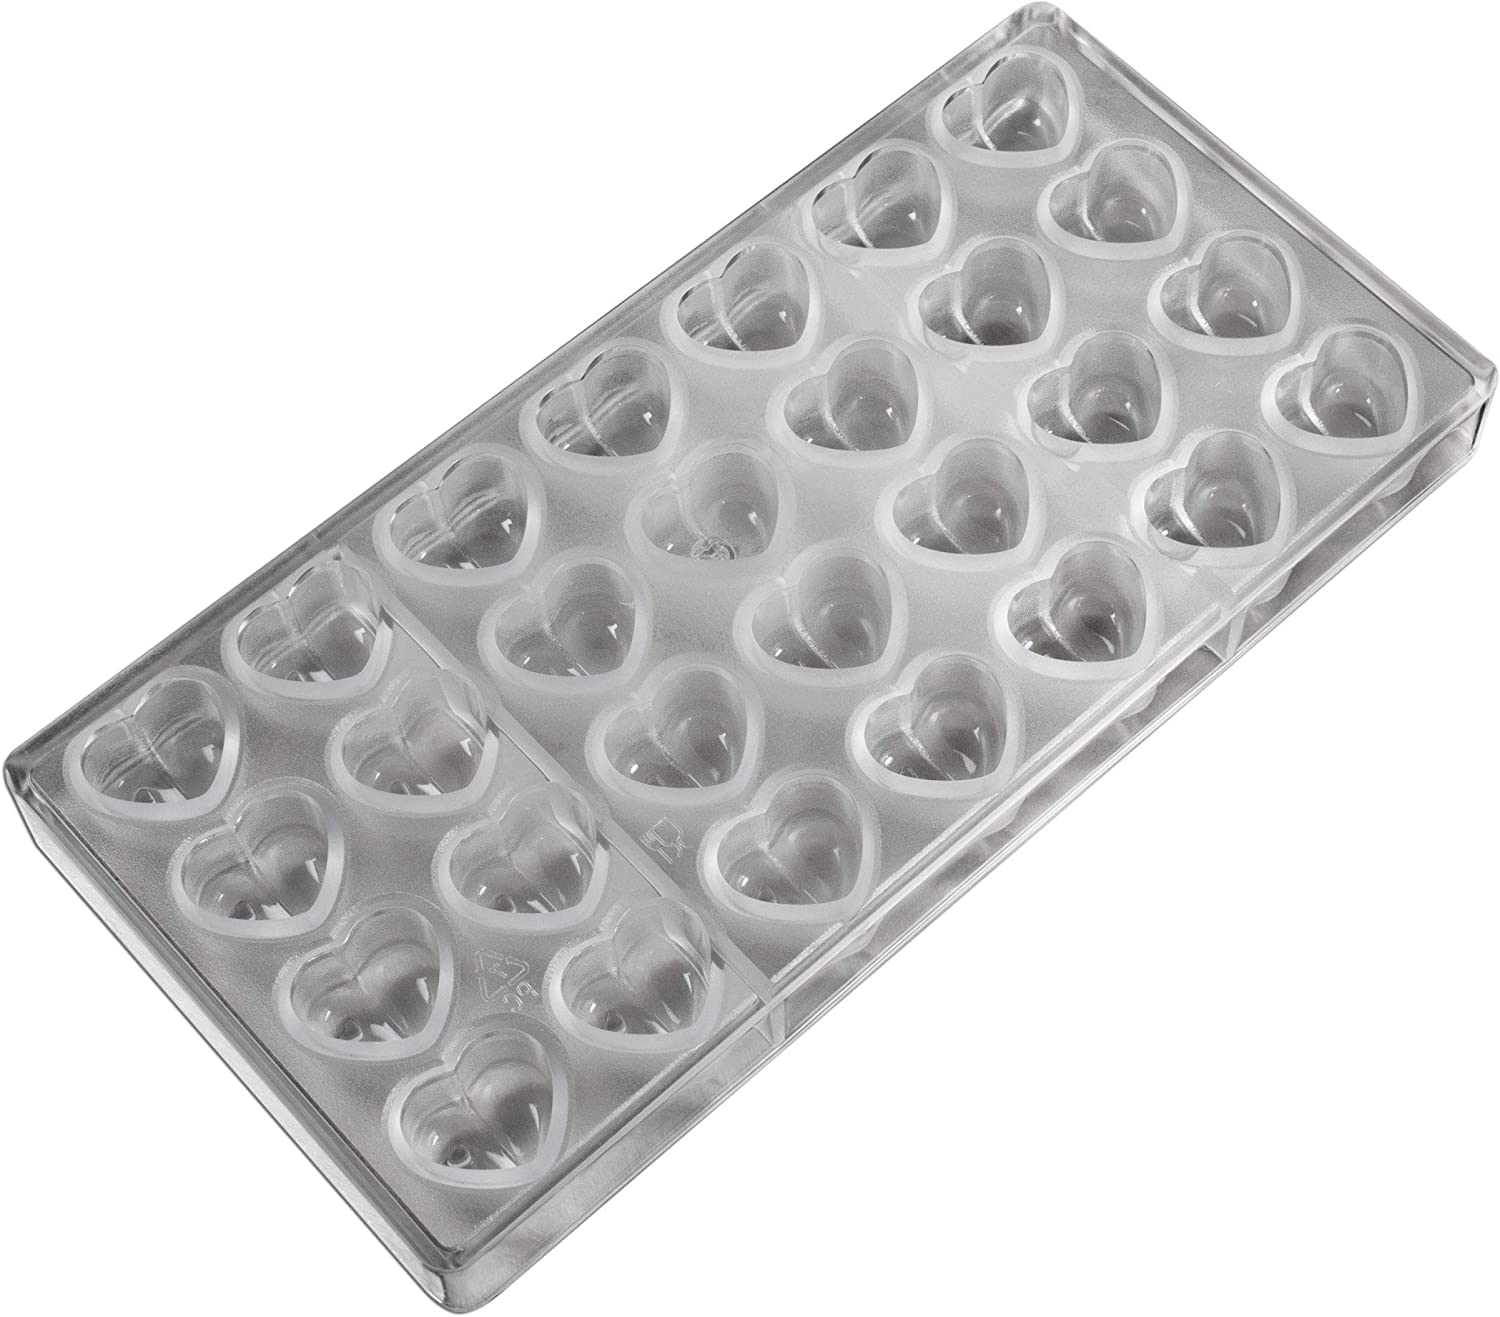 3 Cavities Fat Daddio/'s Polycarbonate Candy Mold Block of 15 Parts